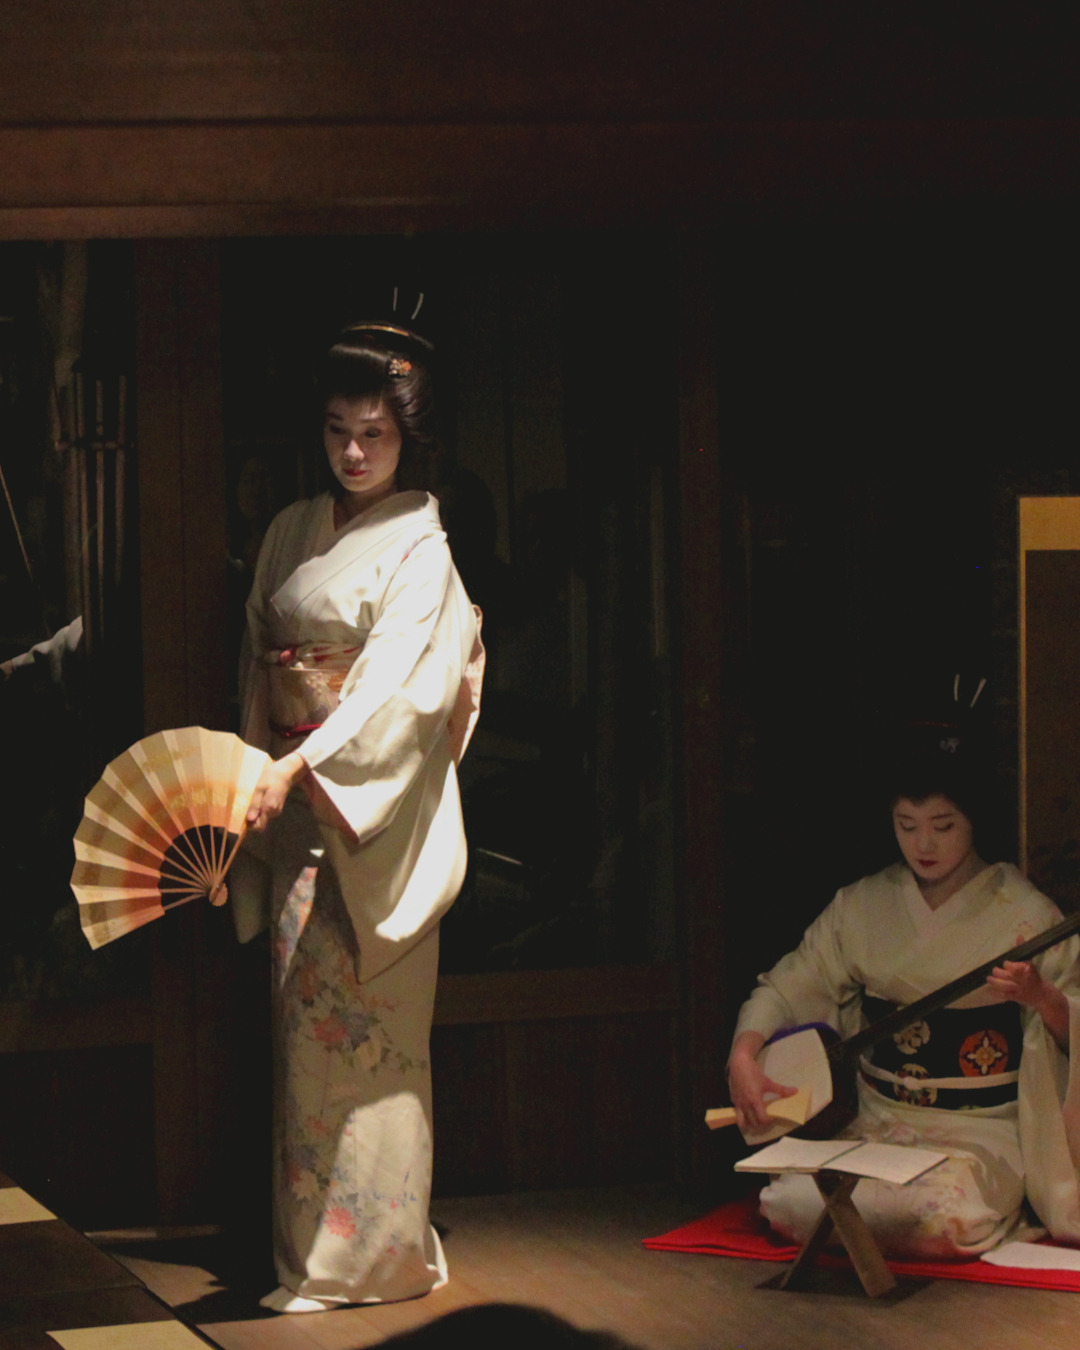 Geisha performing under a spotlight, at the In Kanazawa House performance event